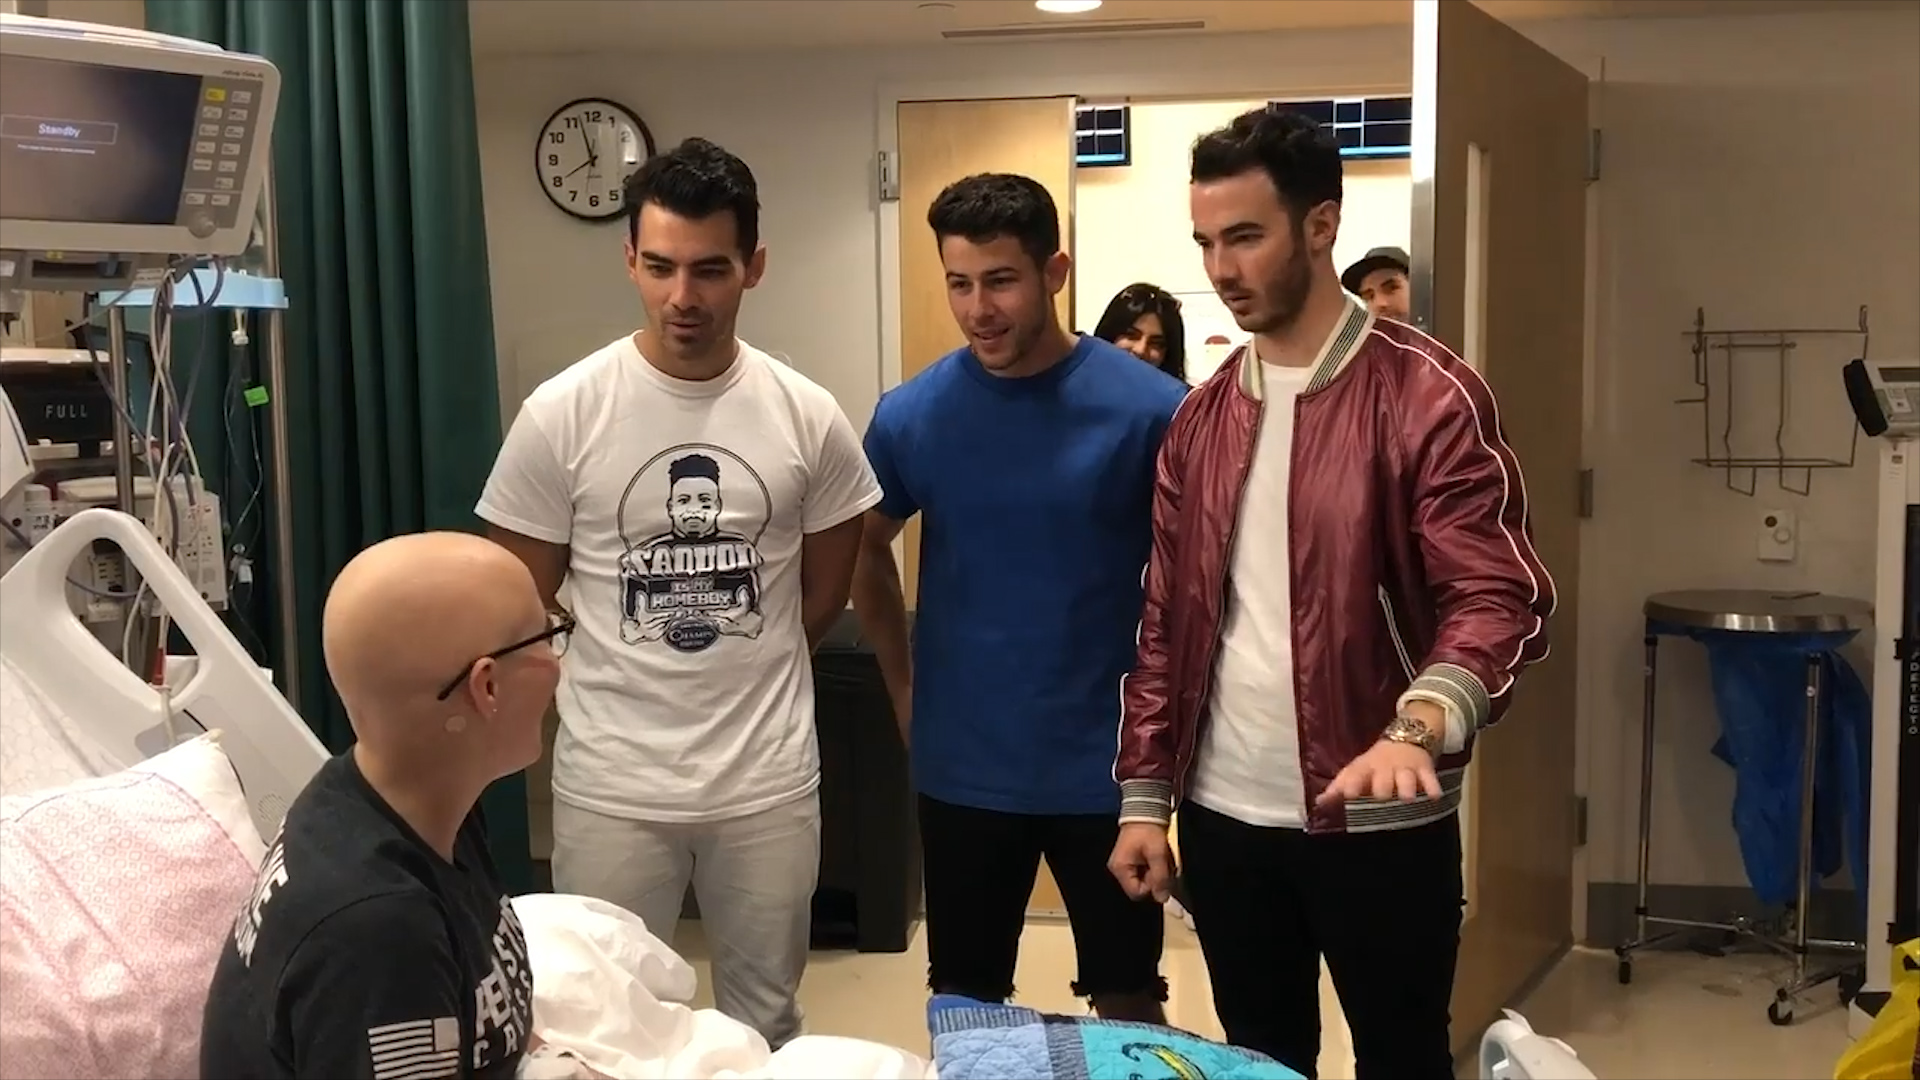 The Jonas brothers visited a sick fan in the hospital